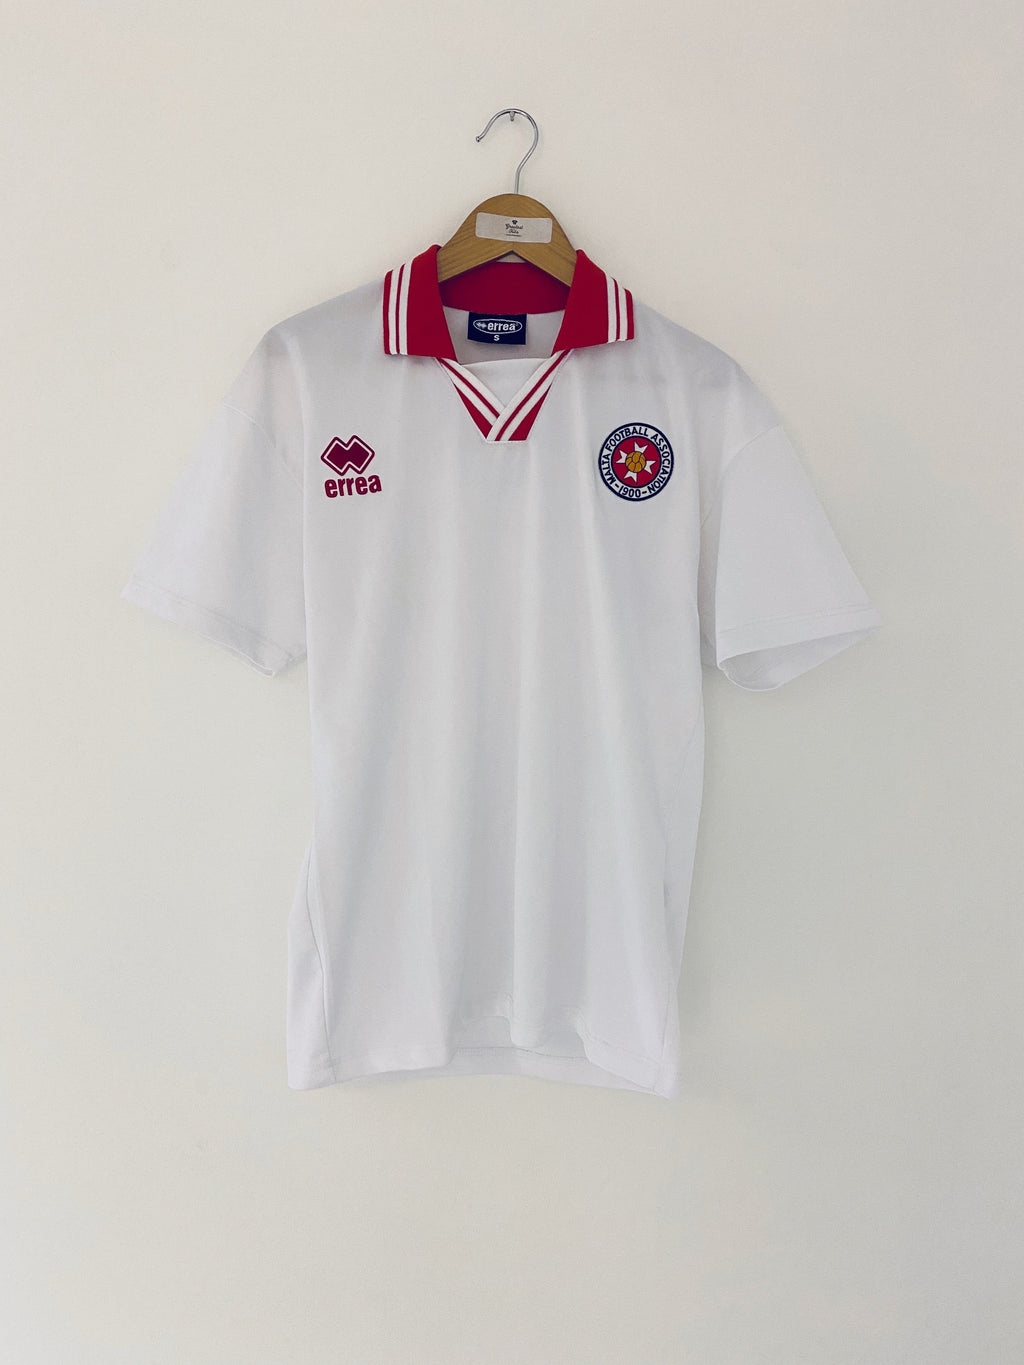 2001/02 Malta Away Shirt (S) 9/10